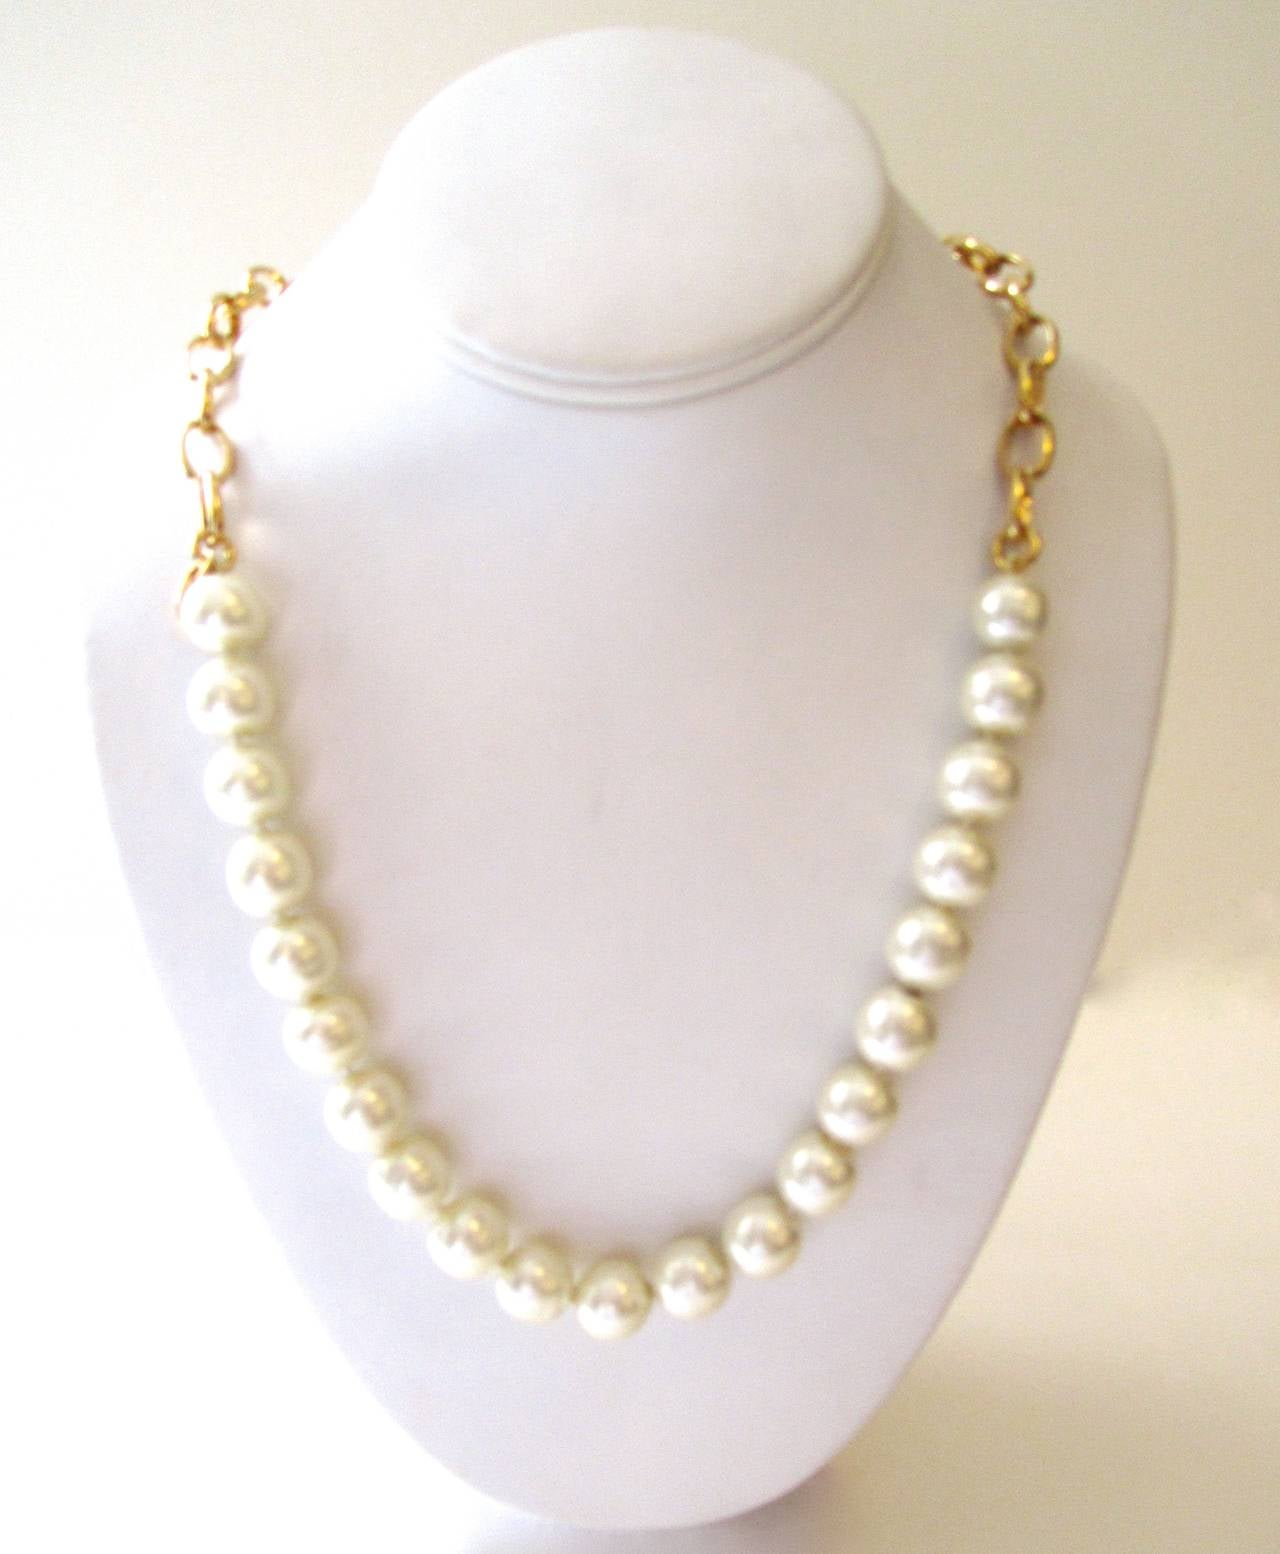 Vintage 1980's Chanel Necklace - Pearls with Gold Tone Oval Links 2